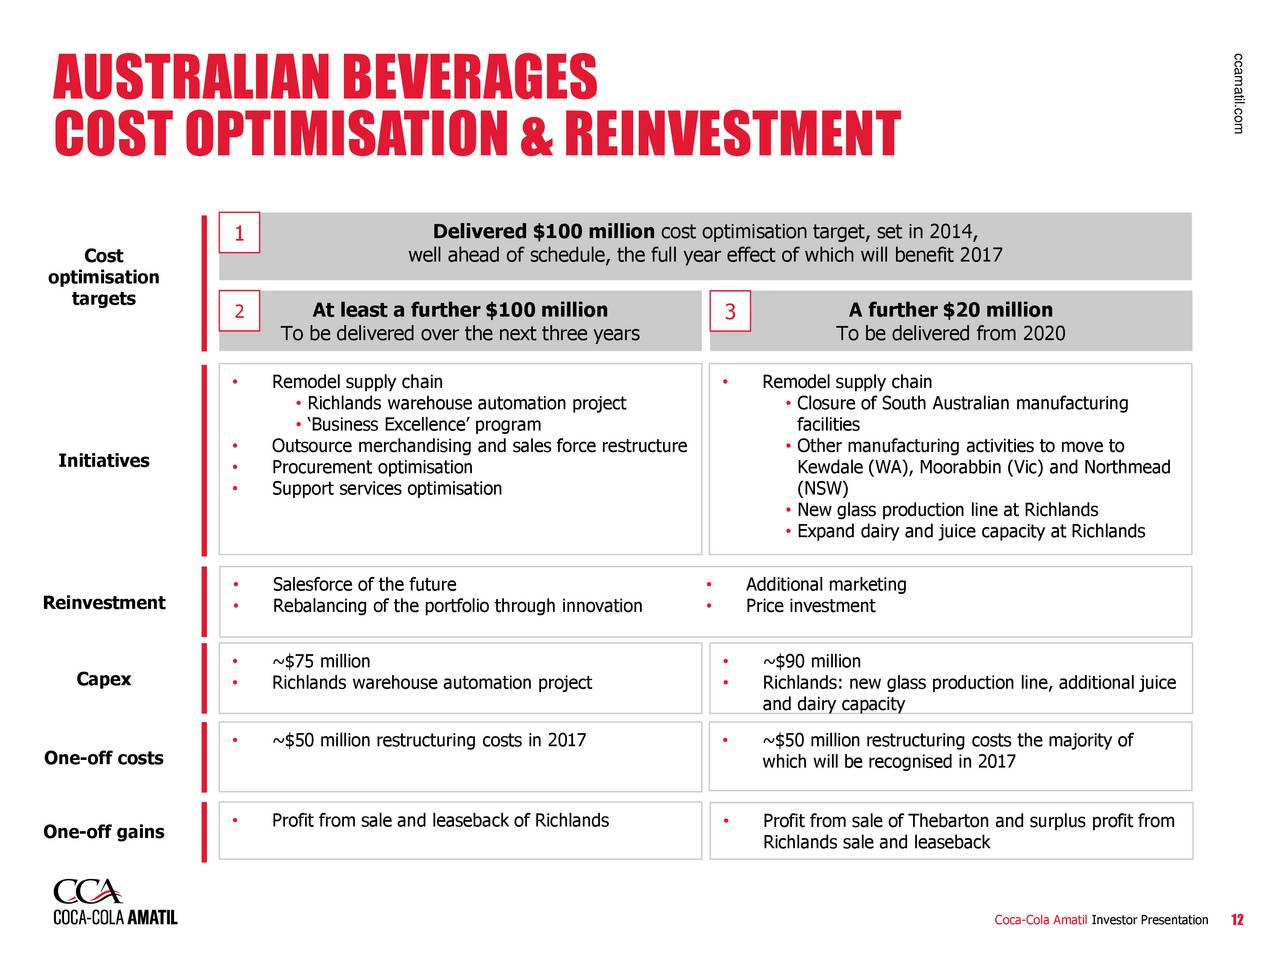 coca cola amatil ltd largest company in Last drinks for coca-cola amatil cost cuts at australia's largest soft drink company will be unable to forestall earnings declines in the years ahead.